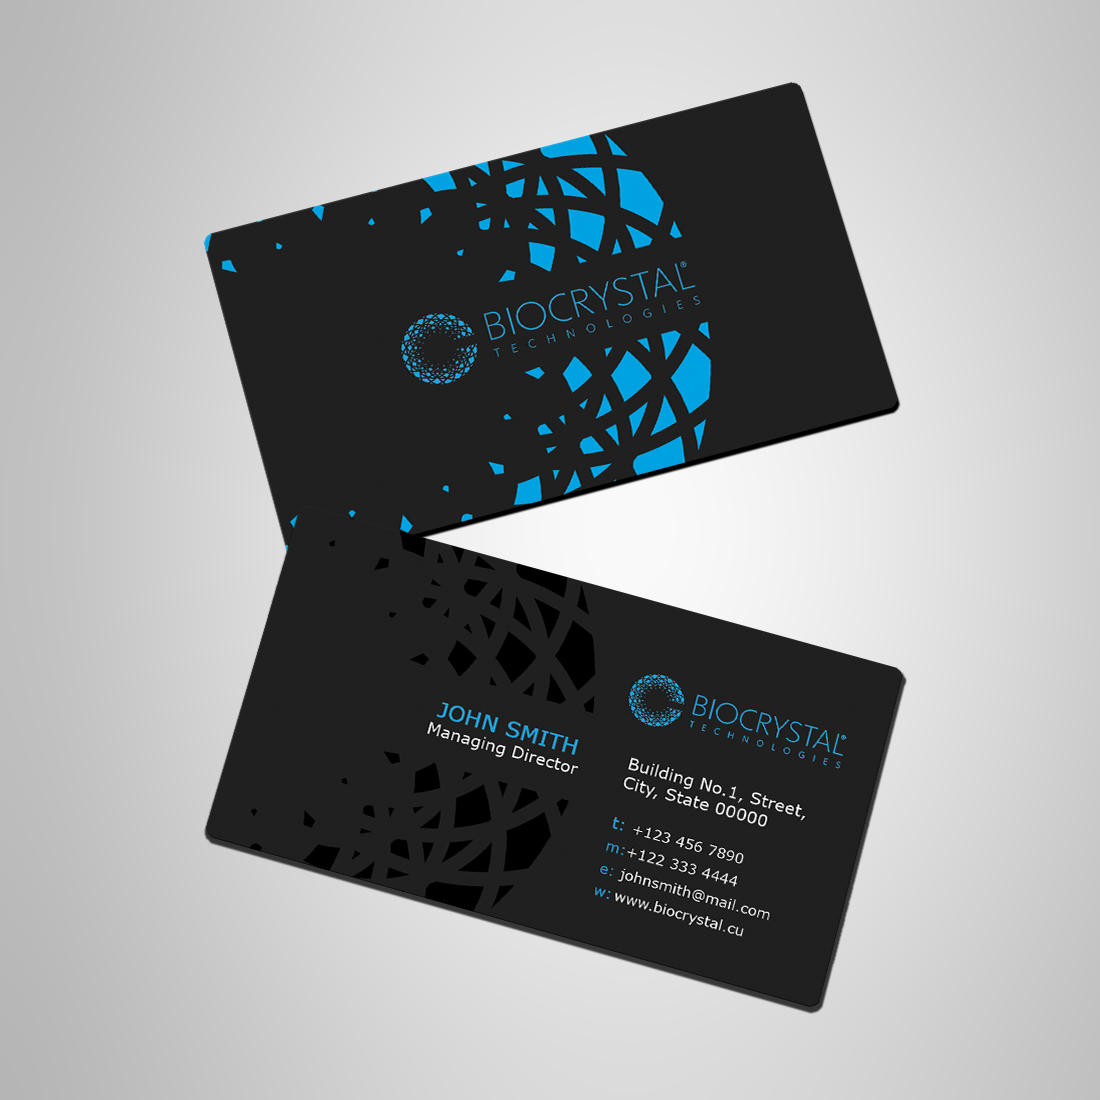 Biotechnology Business Card Design Galleries for Inspiration